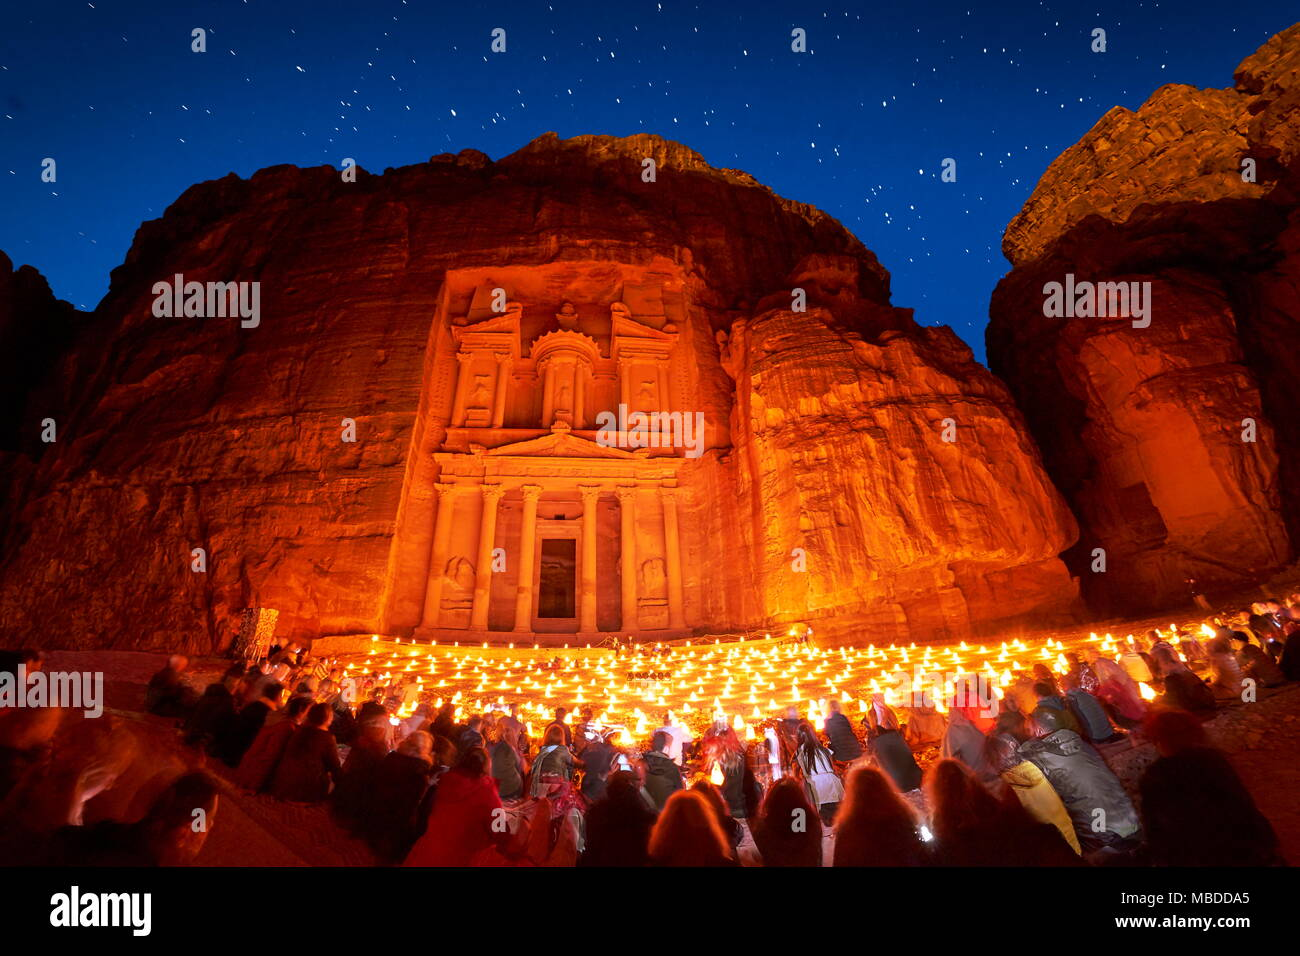 Petra by night, the Treasury Al Khazneh, Petra, Jordan - Stock Image